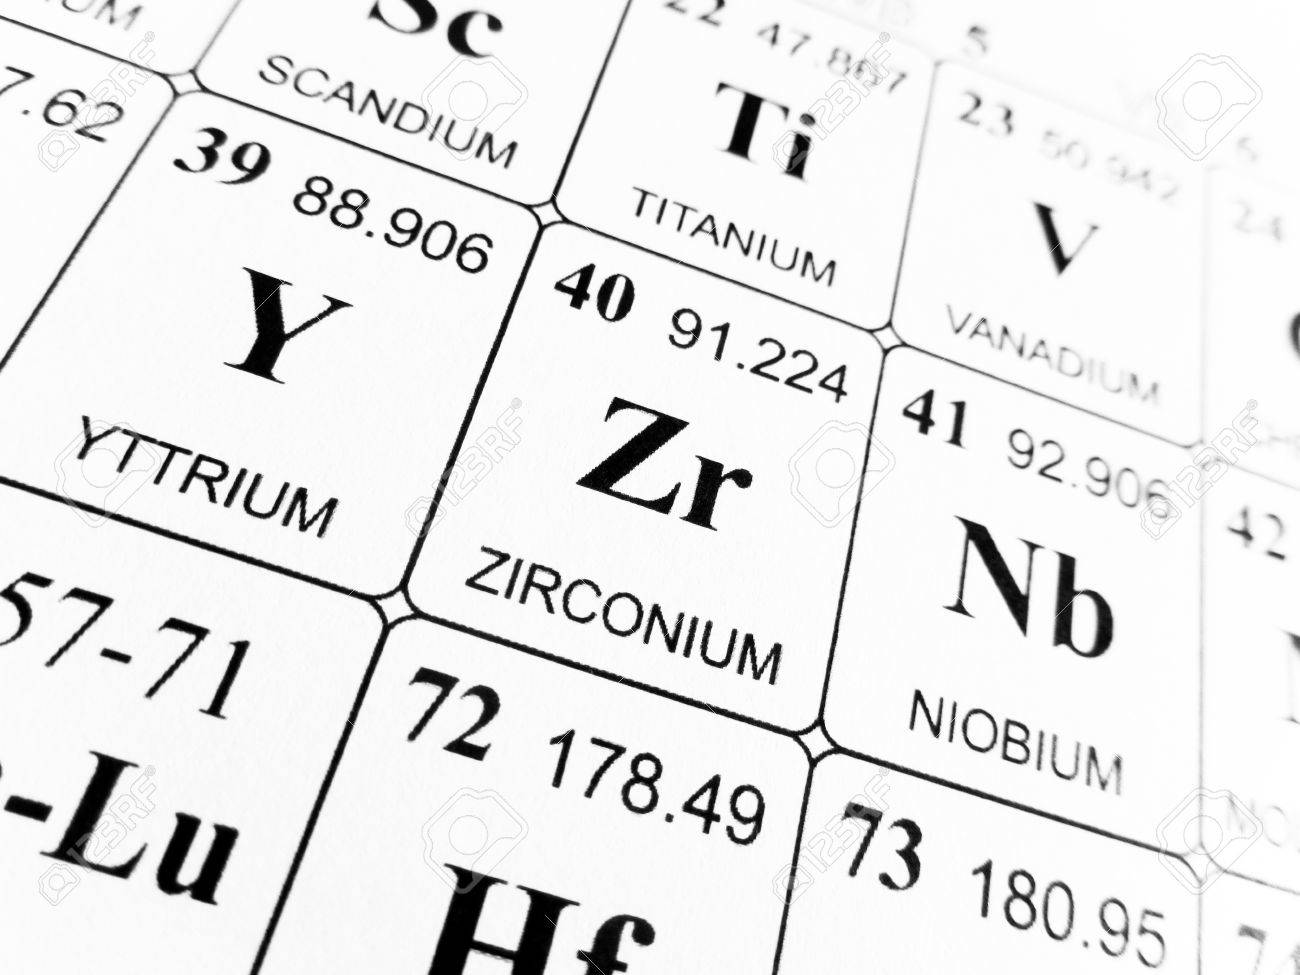 Yttrium on the periodic table image collections periodic table zirconium in periodic table images periodic table images zirconium in periodic table images periodic table images gamestrikefo Images